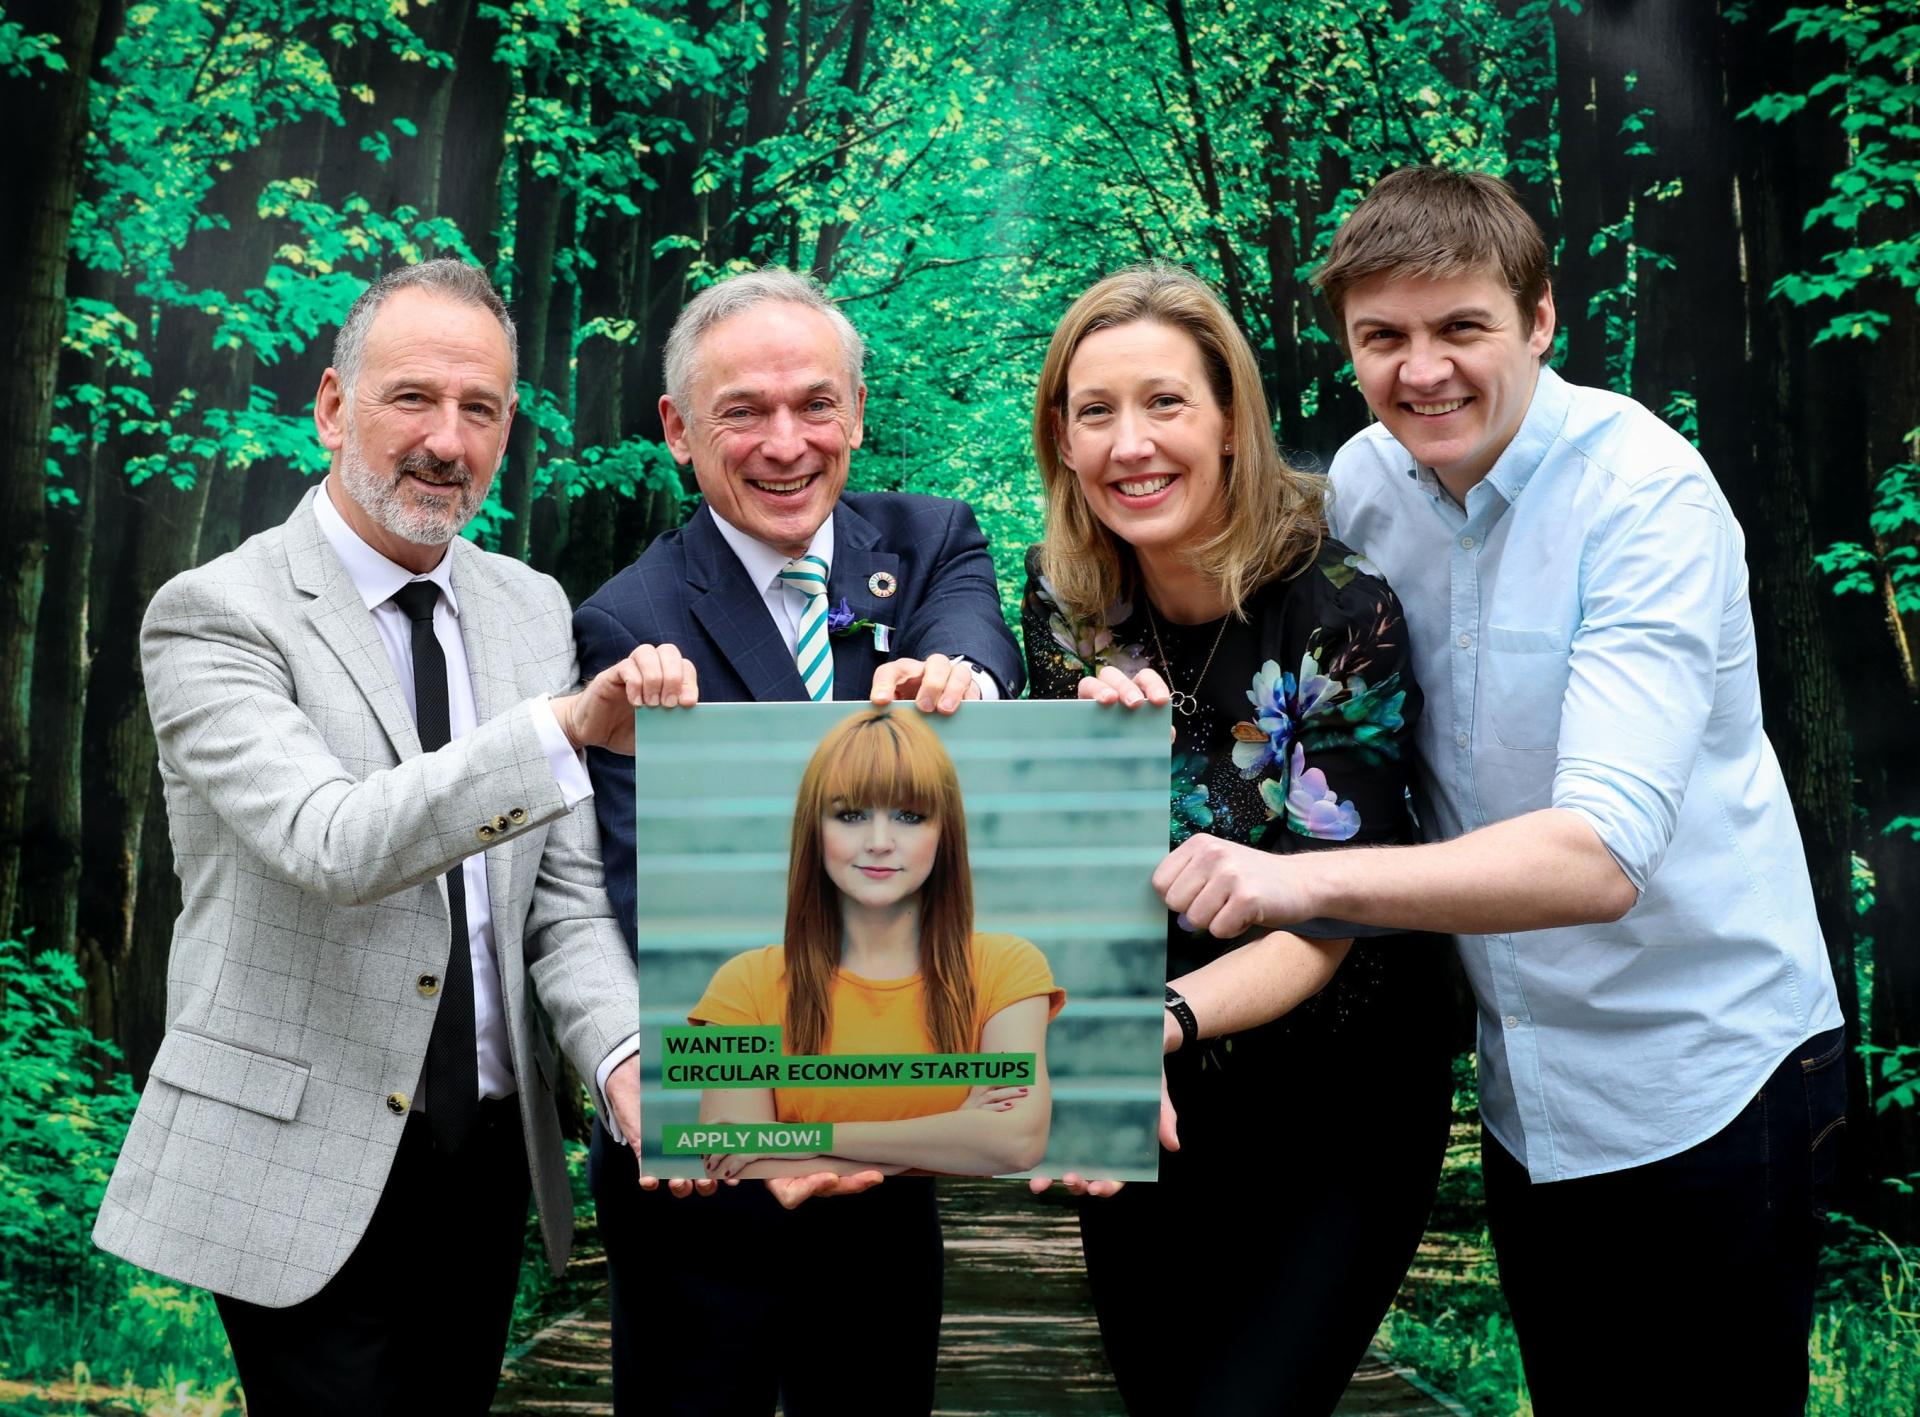 Minister Bruton calls on Leitrim Start Ups to compete in